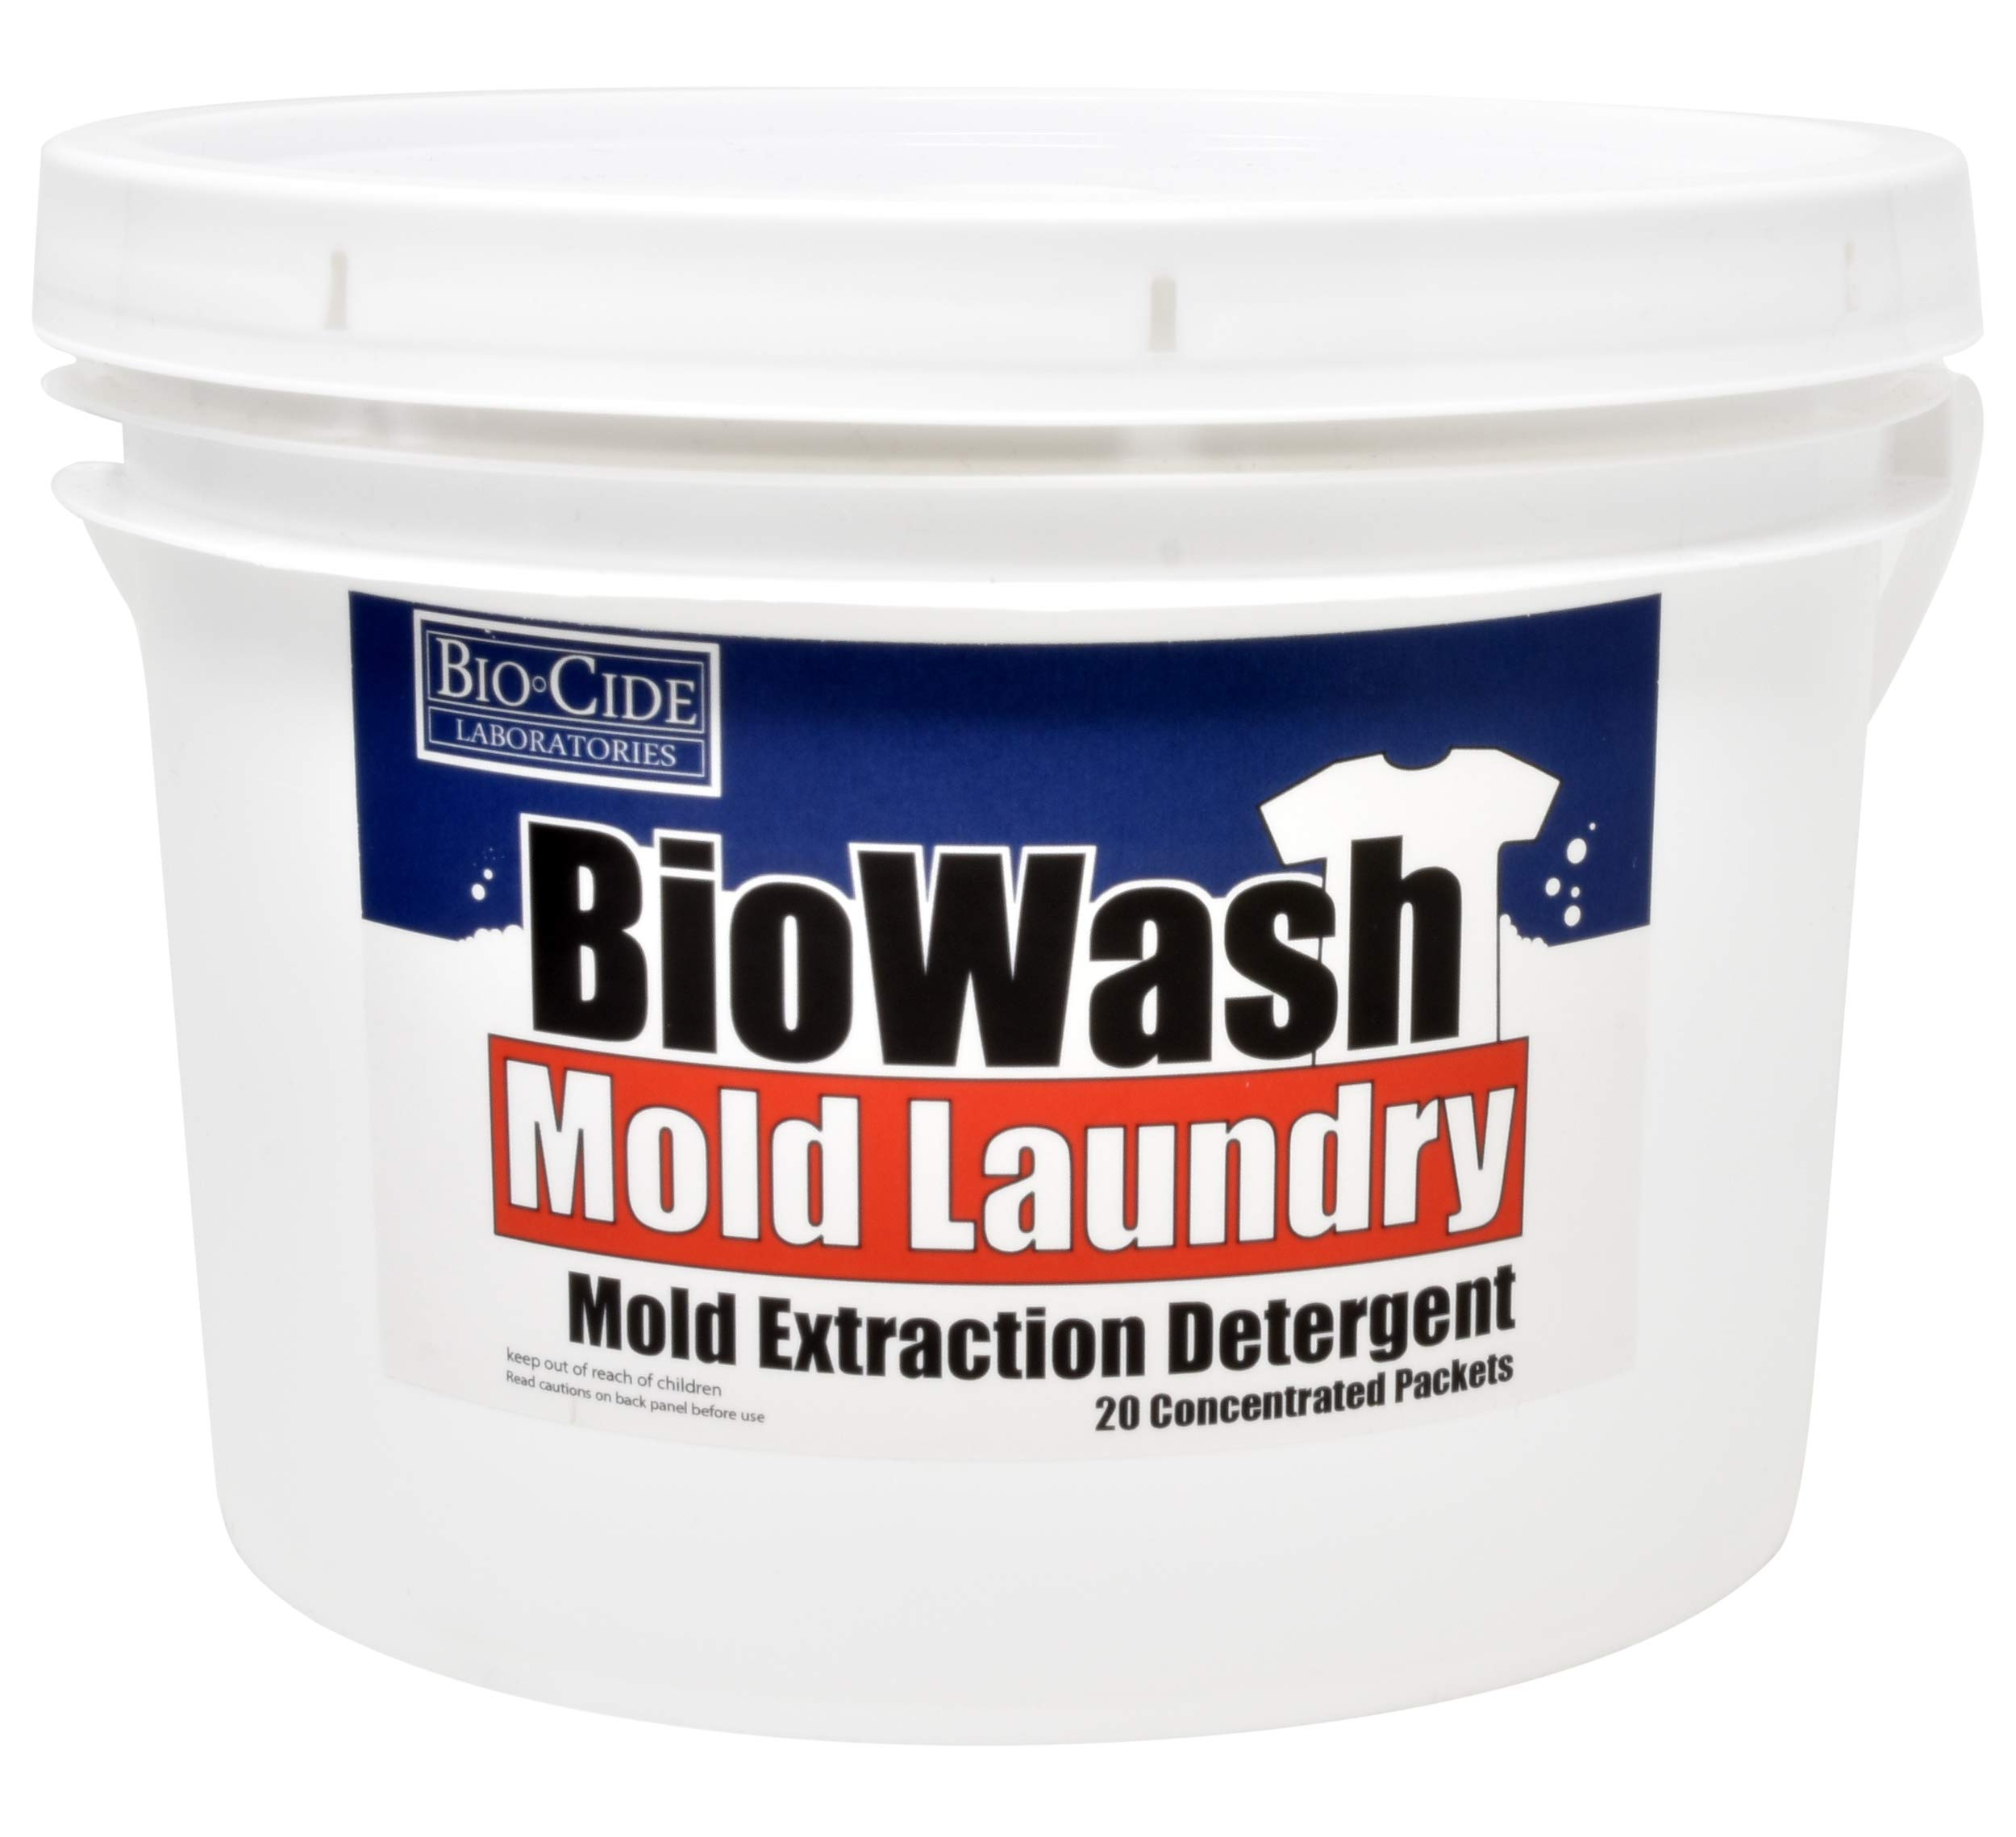 BioCide BioWash Mold Remover Detergent - Mold Killer and Remover, Kill, Clean and Extract Mold, Mildew, Germs, Viruses, Fungi and Bacteria from Laundry-A Mold Extractor & Mold Laundry Detergent System